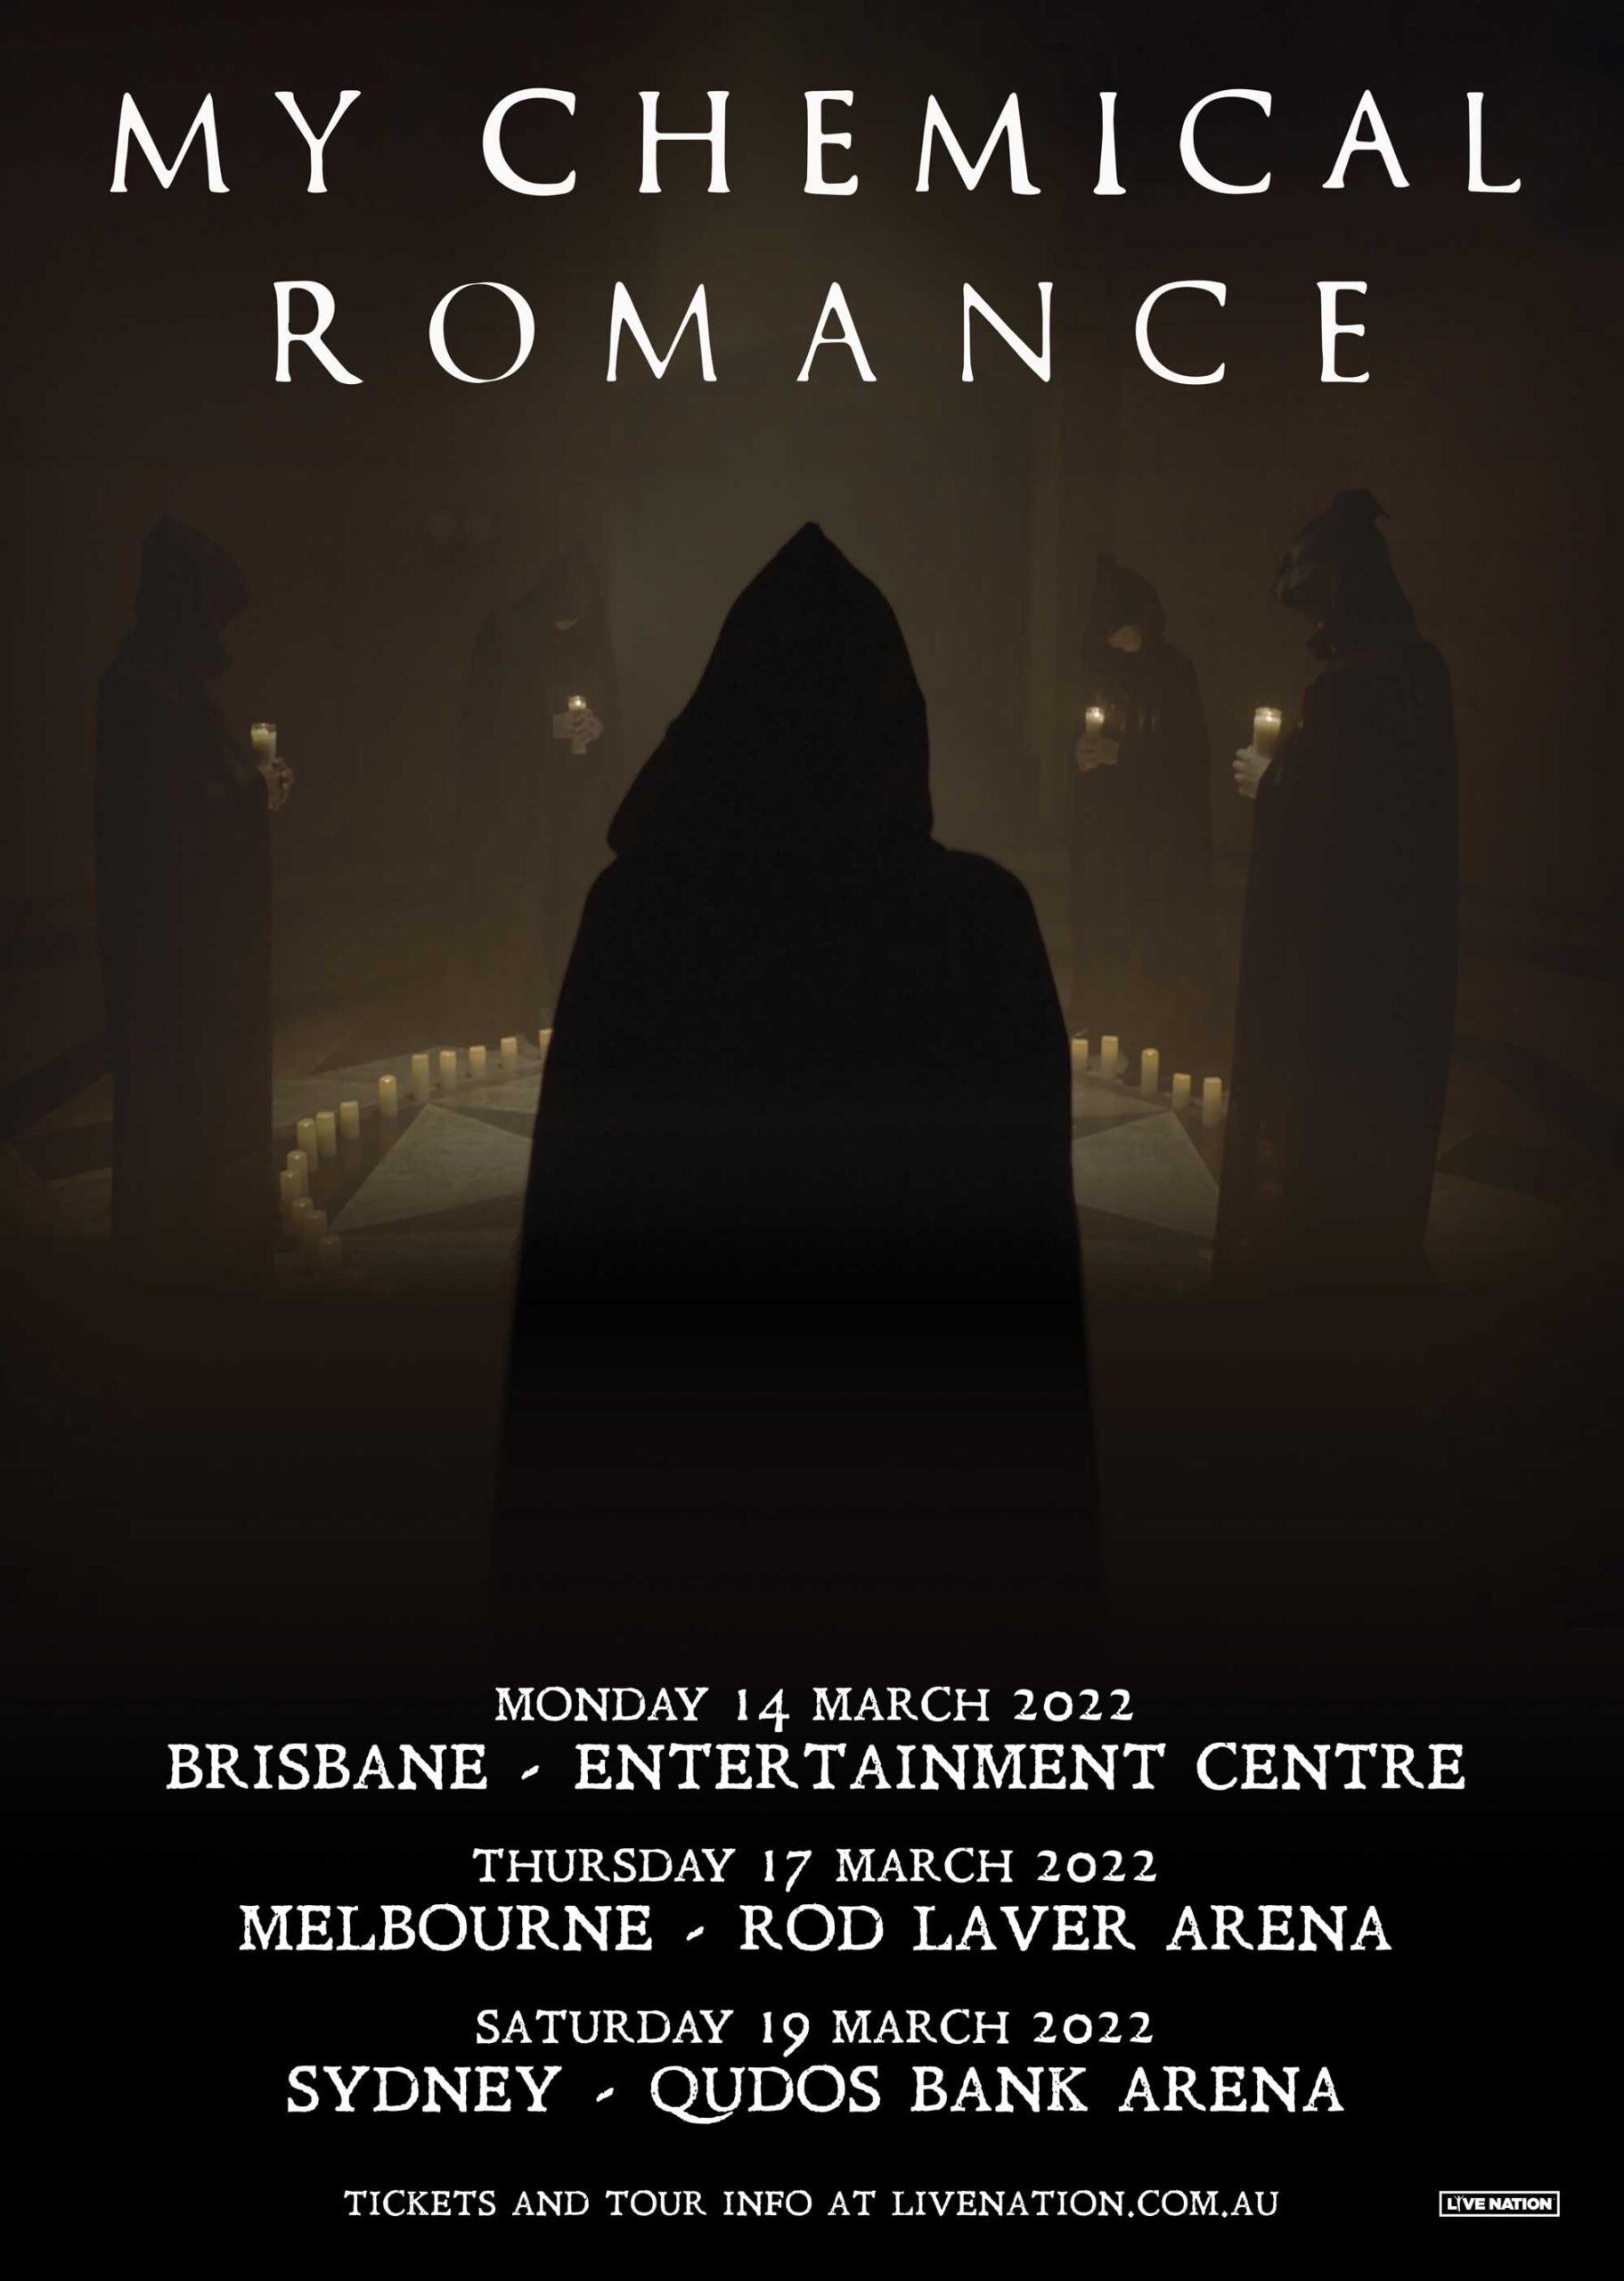 MY CHEMICAL ROMANCE AUSTRALIA TOUR CONFIRMED FOR 2022.